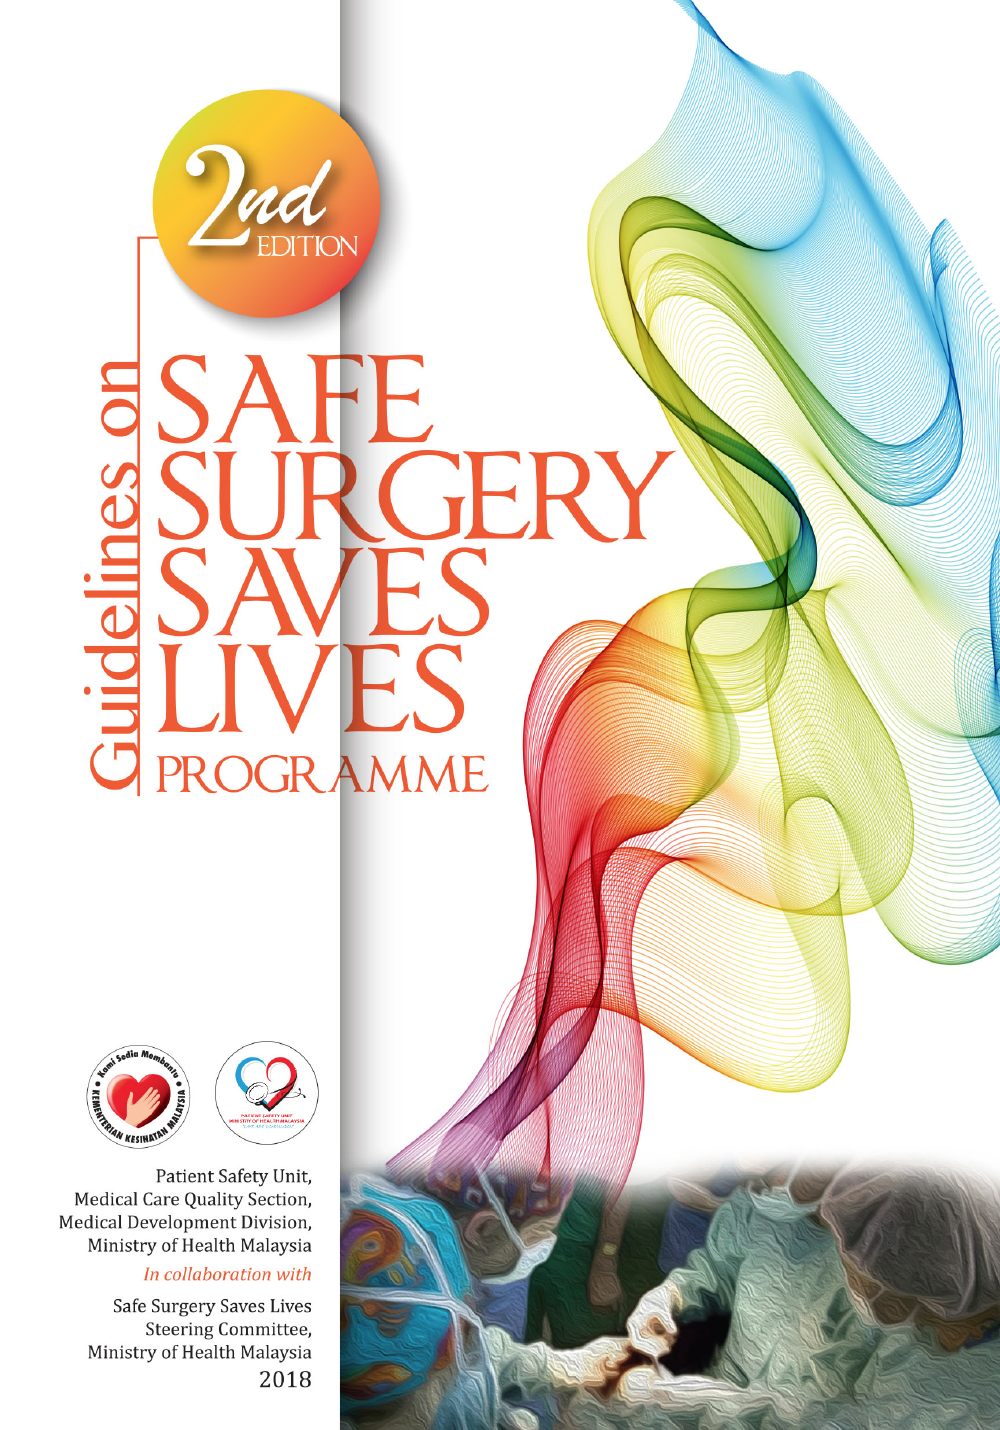 Press Statement Dg Of Health 3 July 2018 Launching Of The Second Edition Of Guidelines On Safe Surgery Saves Lives Programme From The Desk Of The Director General Of Health Malaysia